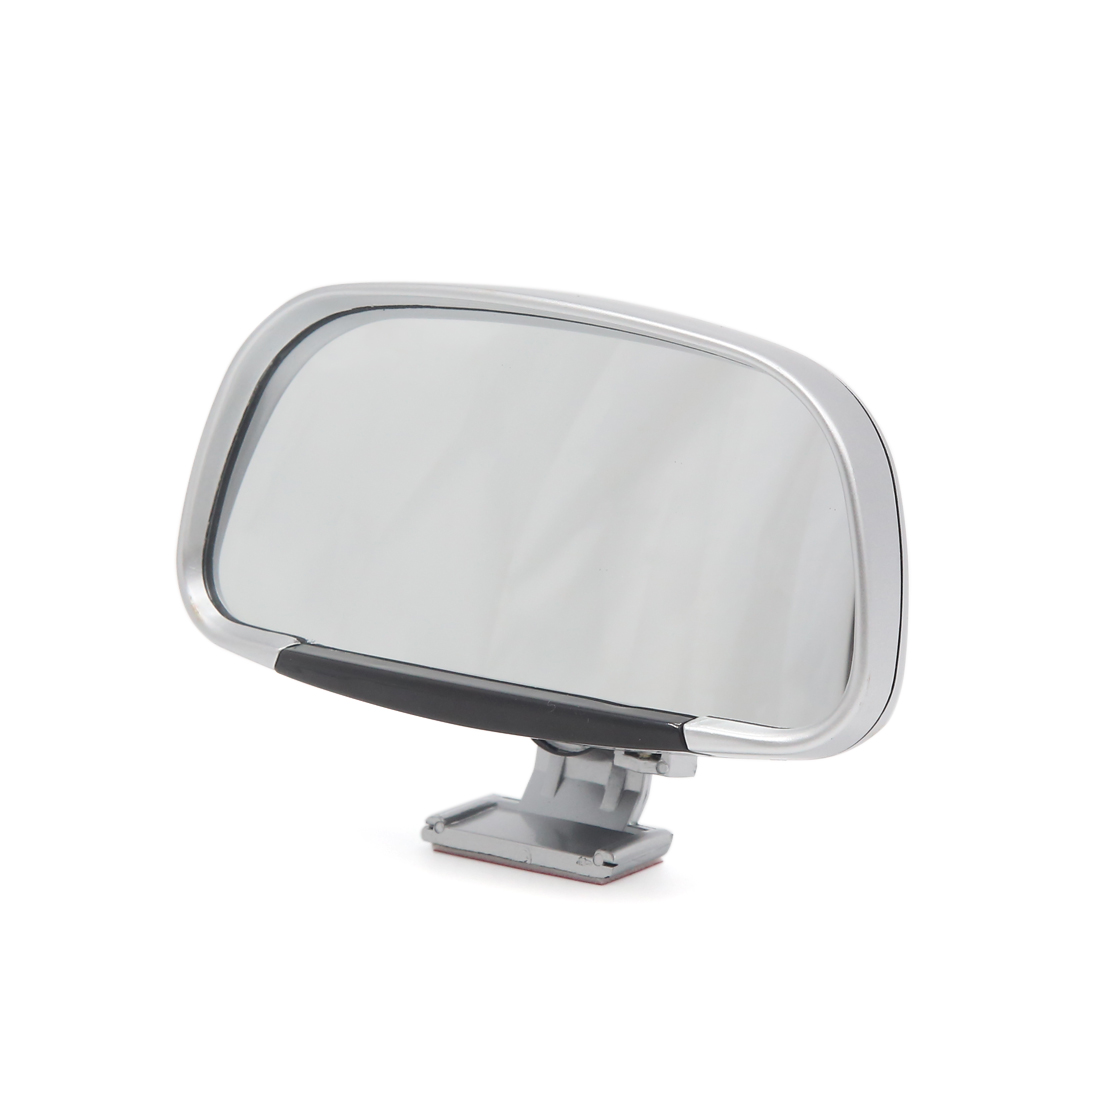 Universal Chrome Plating Plastic Case Convex Car Rearview Auxiliary Blind Spot Mirror  sc 1 st  Walmart.com & Universal Chrome Plating Plastic Case Convex Car Rearview Auxiliary ...